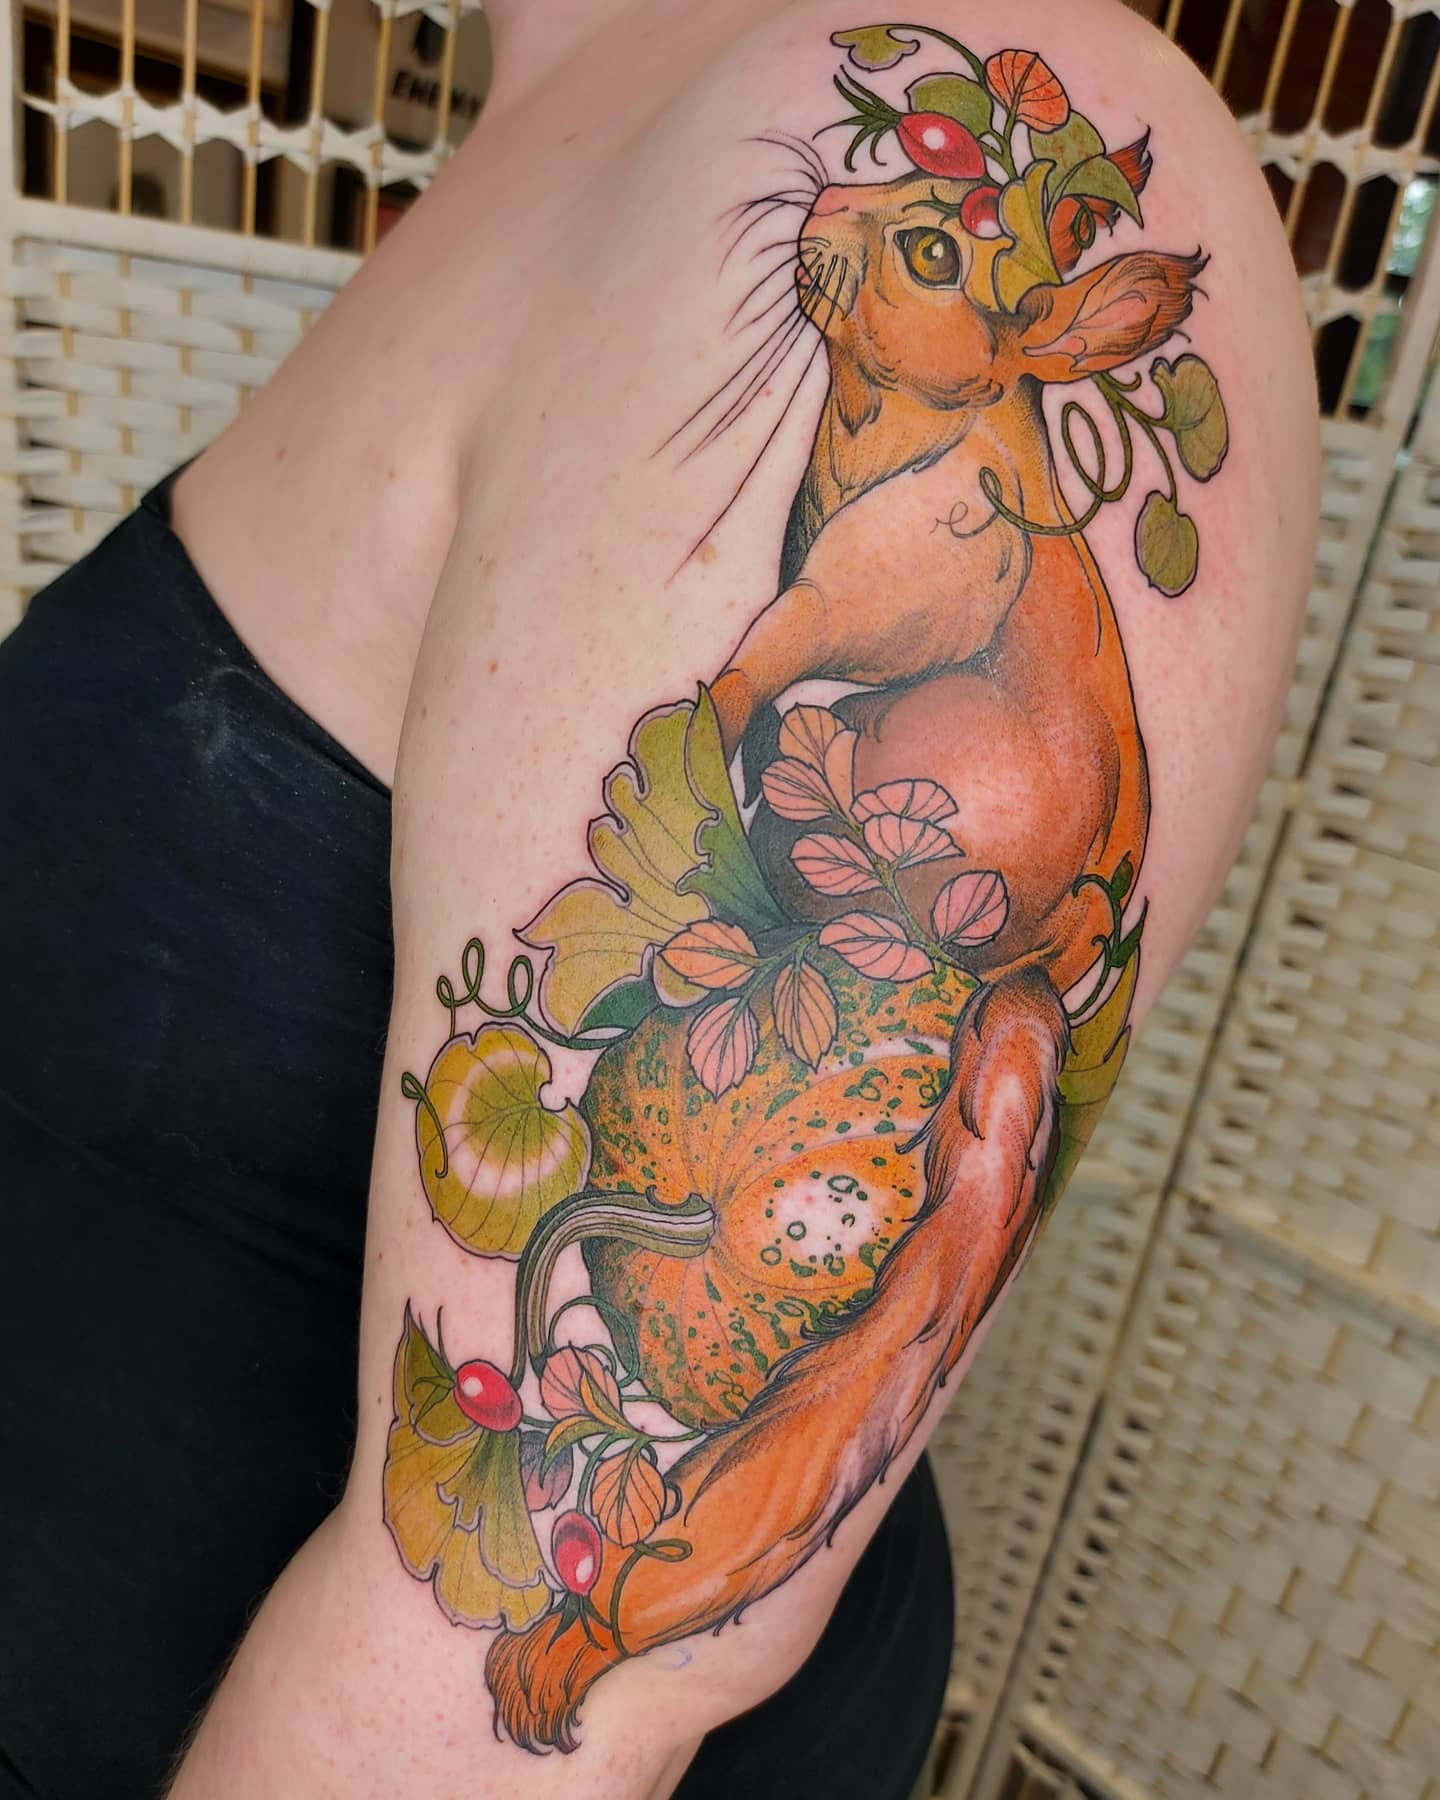 lucy-o-connell-tattoo-artist-squirrel-arm